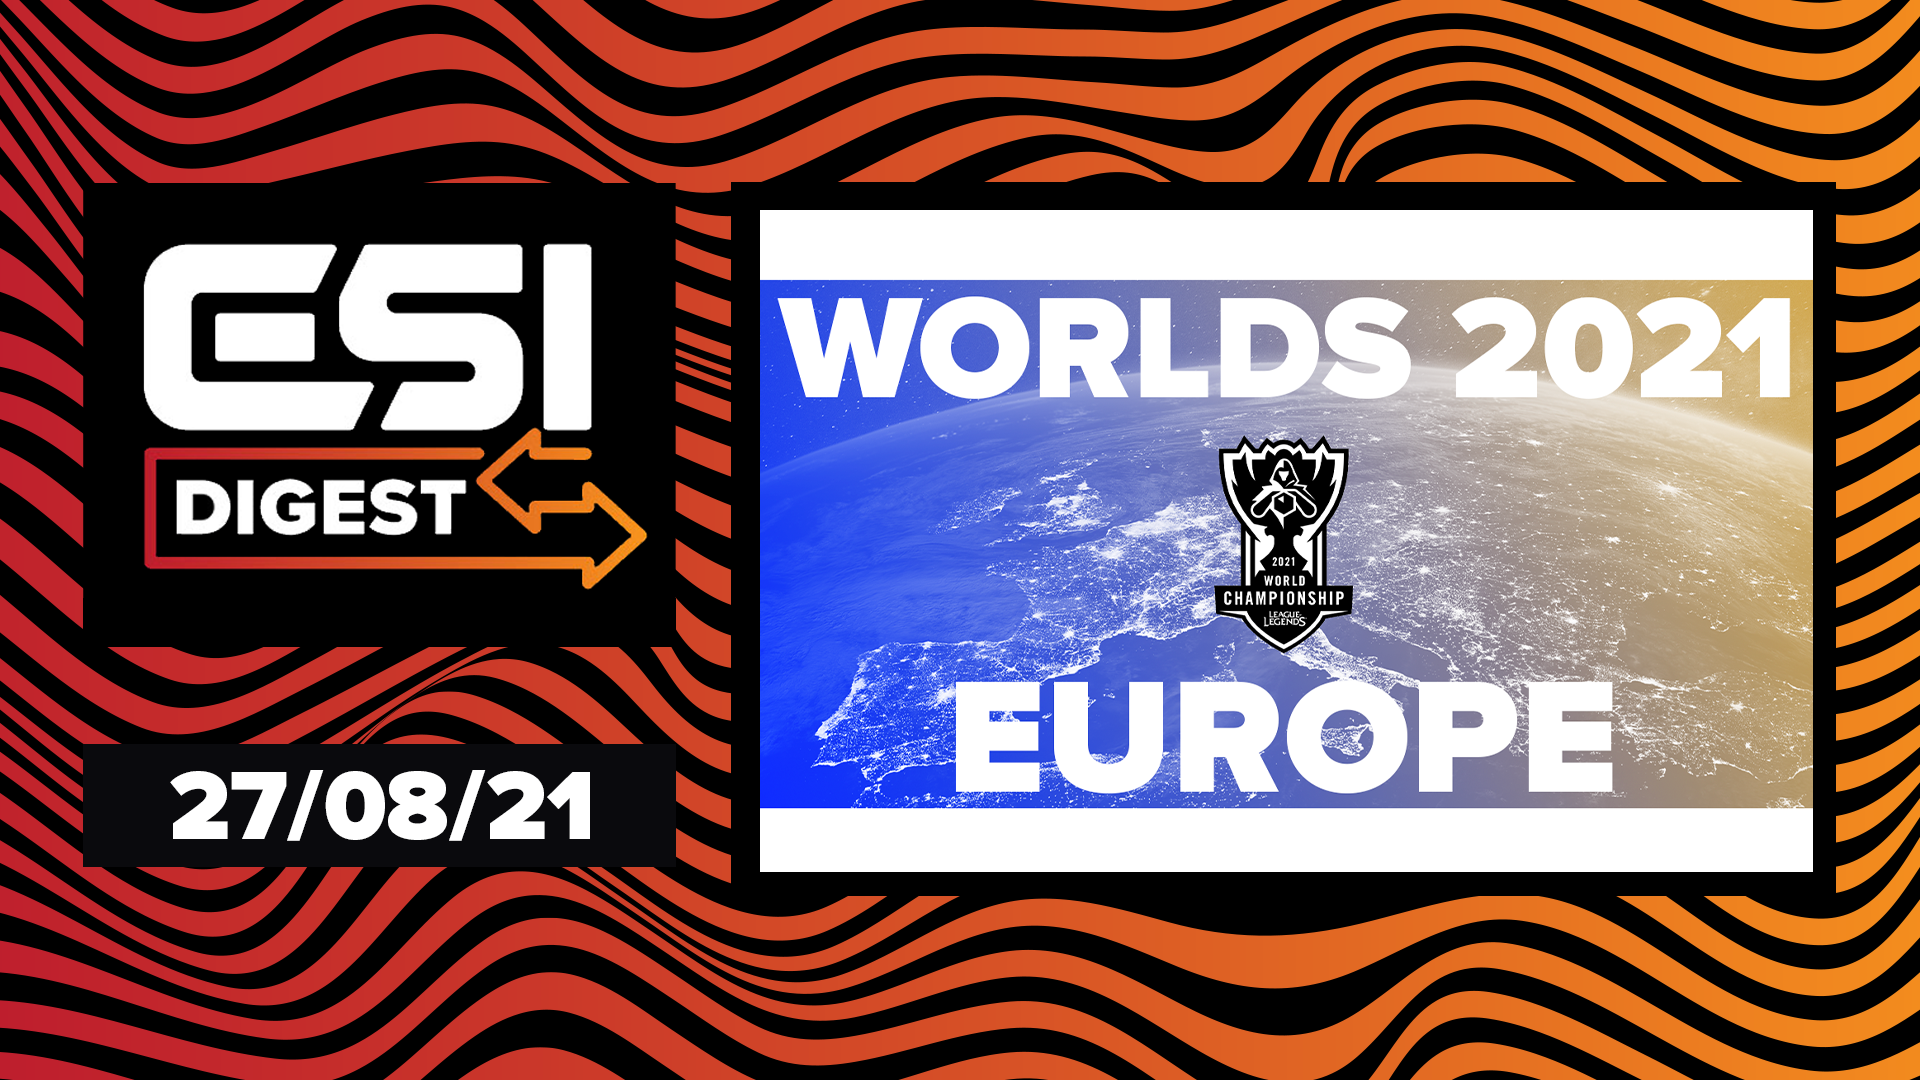 LoL World Championships moves to Europe, Bybit secures esports partners | ESI Digest #57 thumbnail